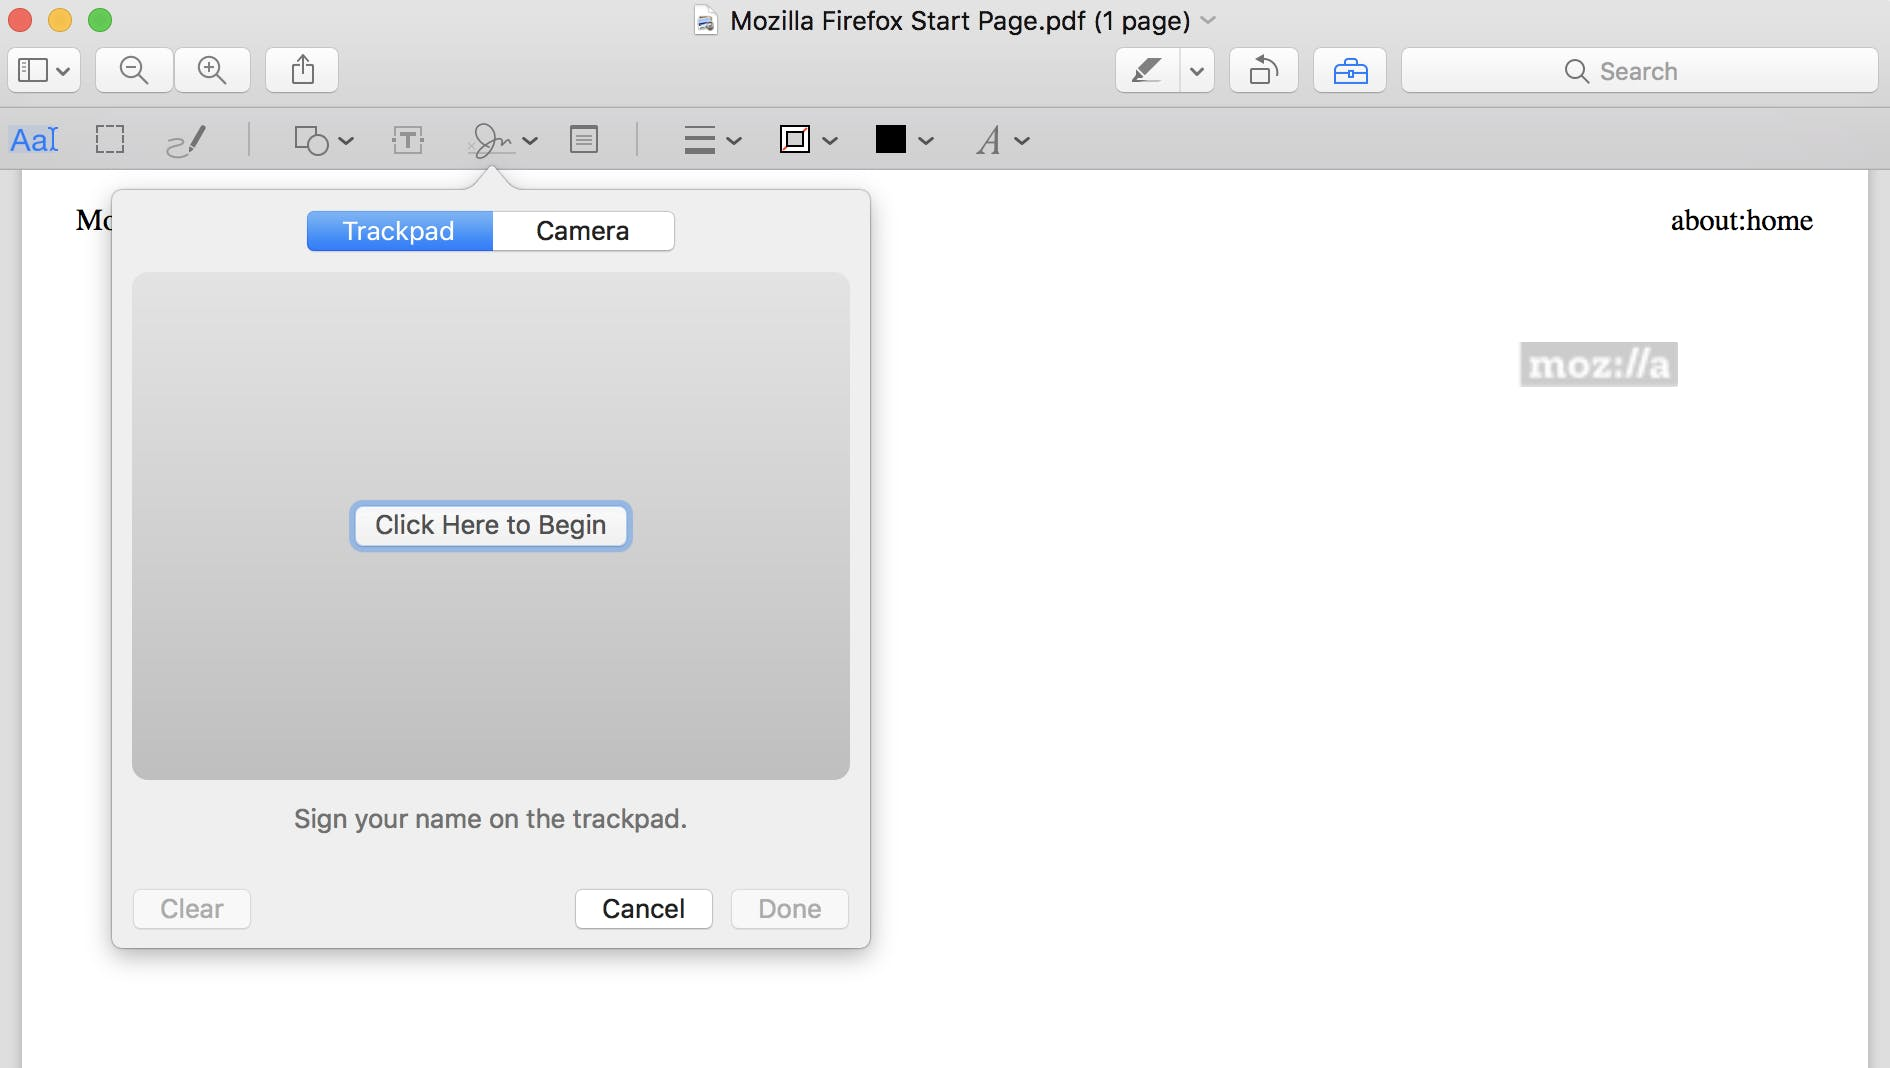 how to edit a pdf : sign a pdf